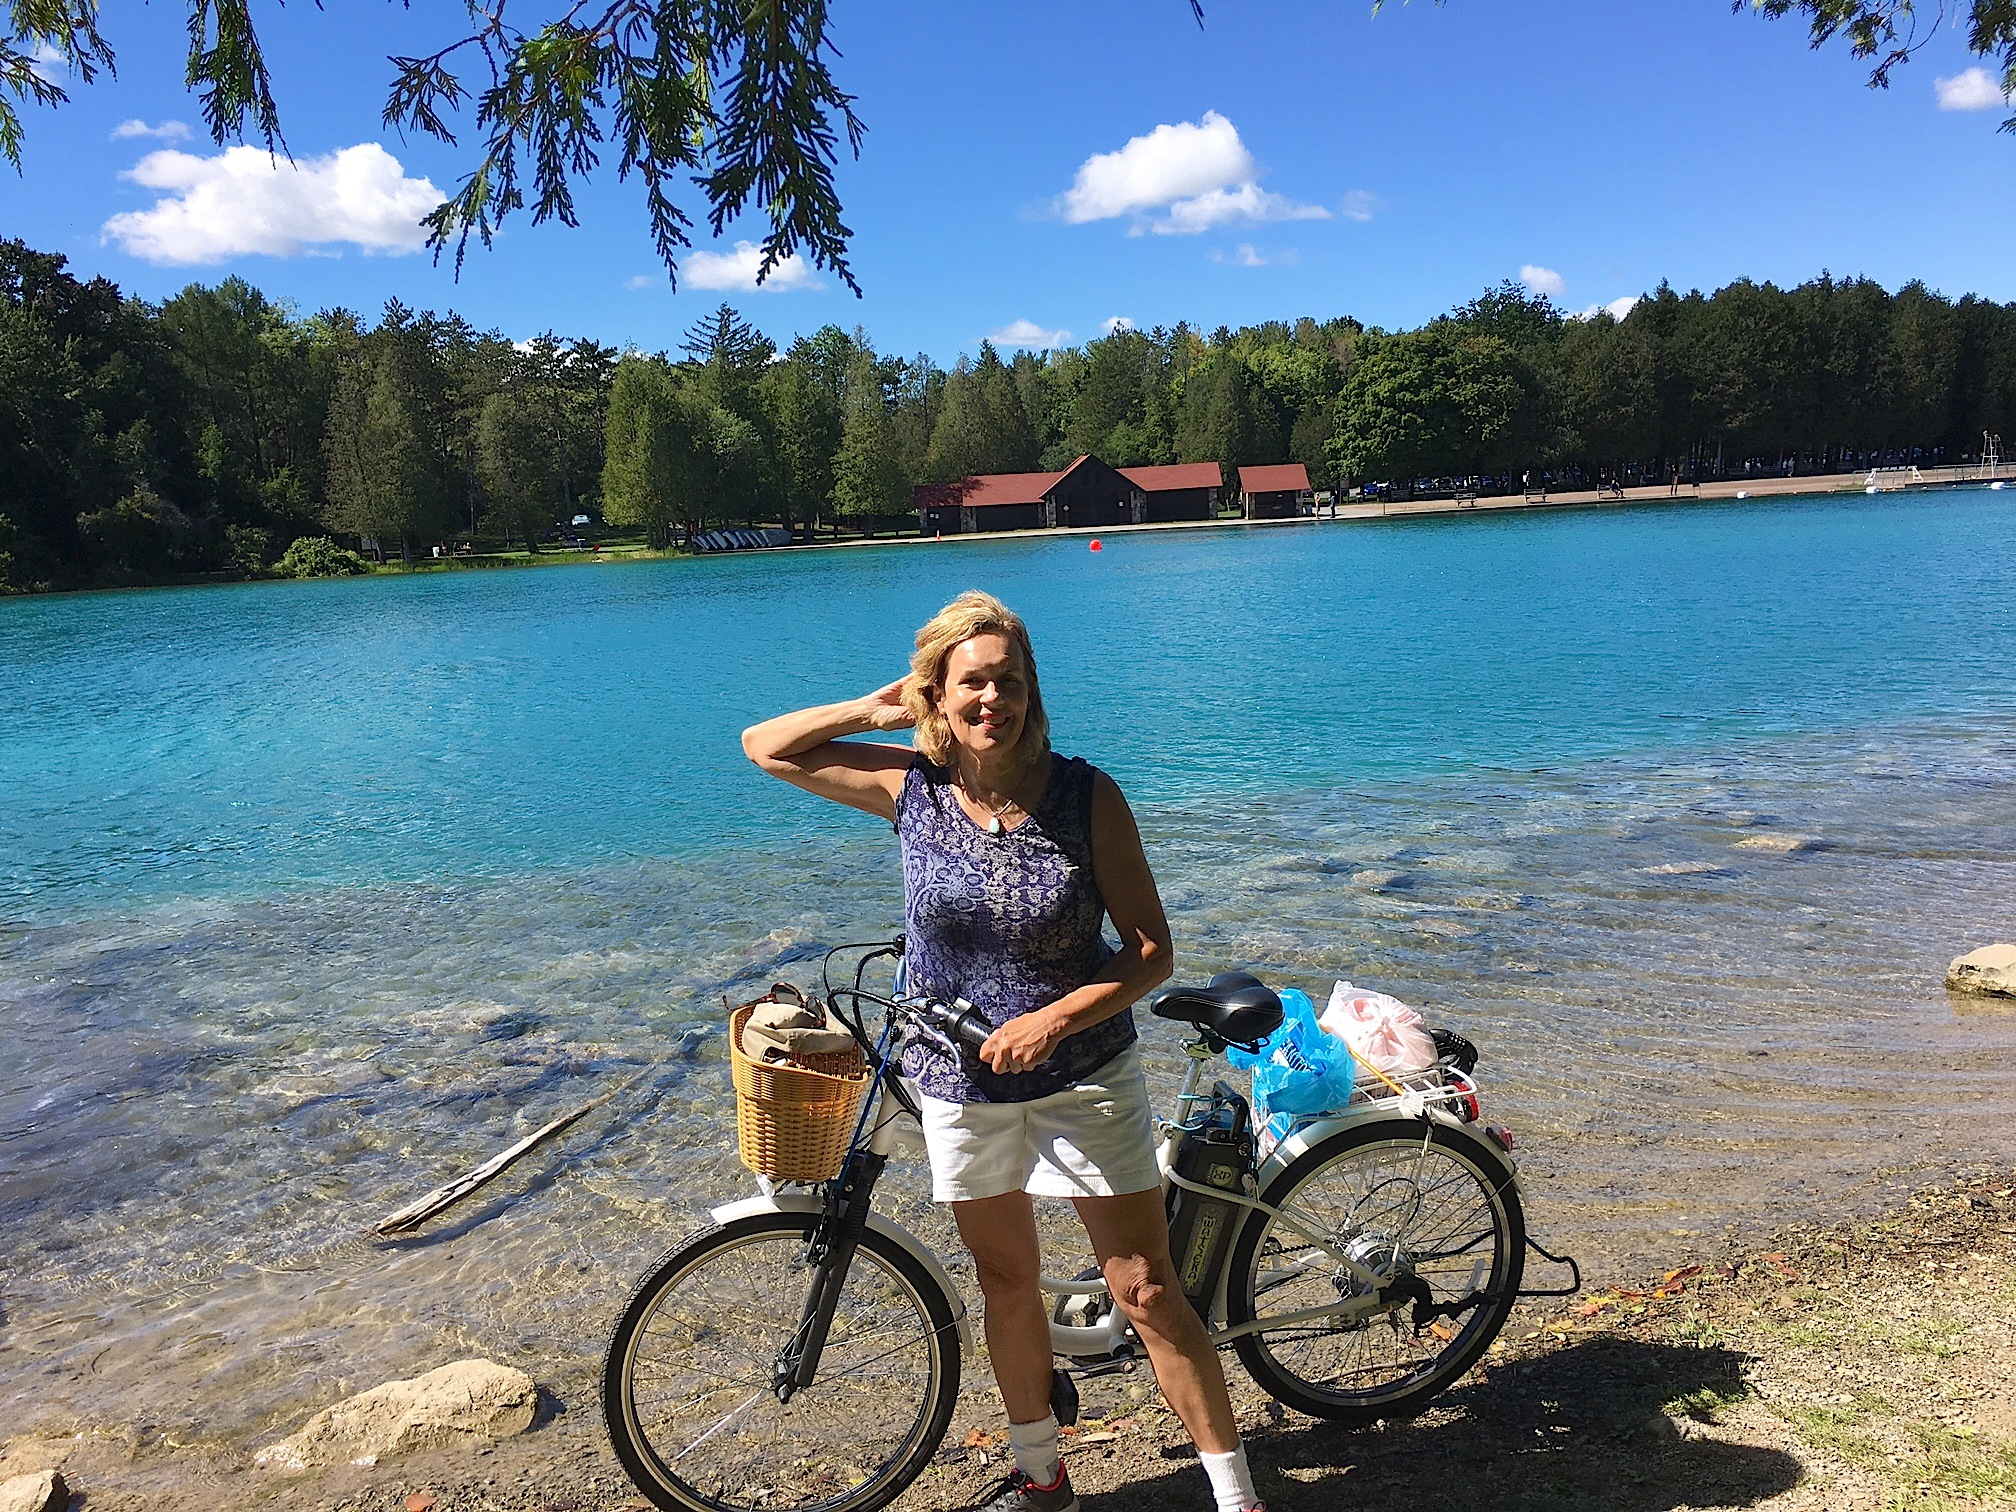 Lorraine biking & swimming at Green Lakes State Park, 9-10-16